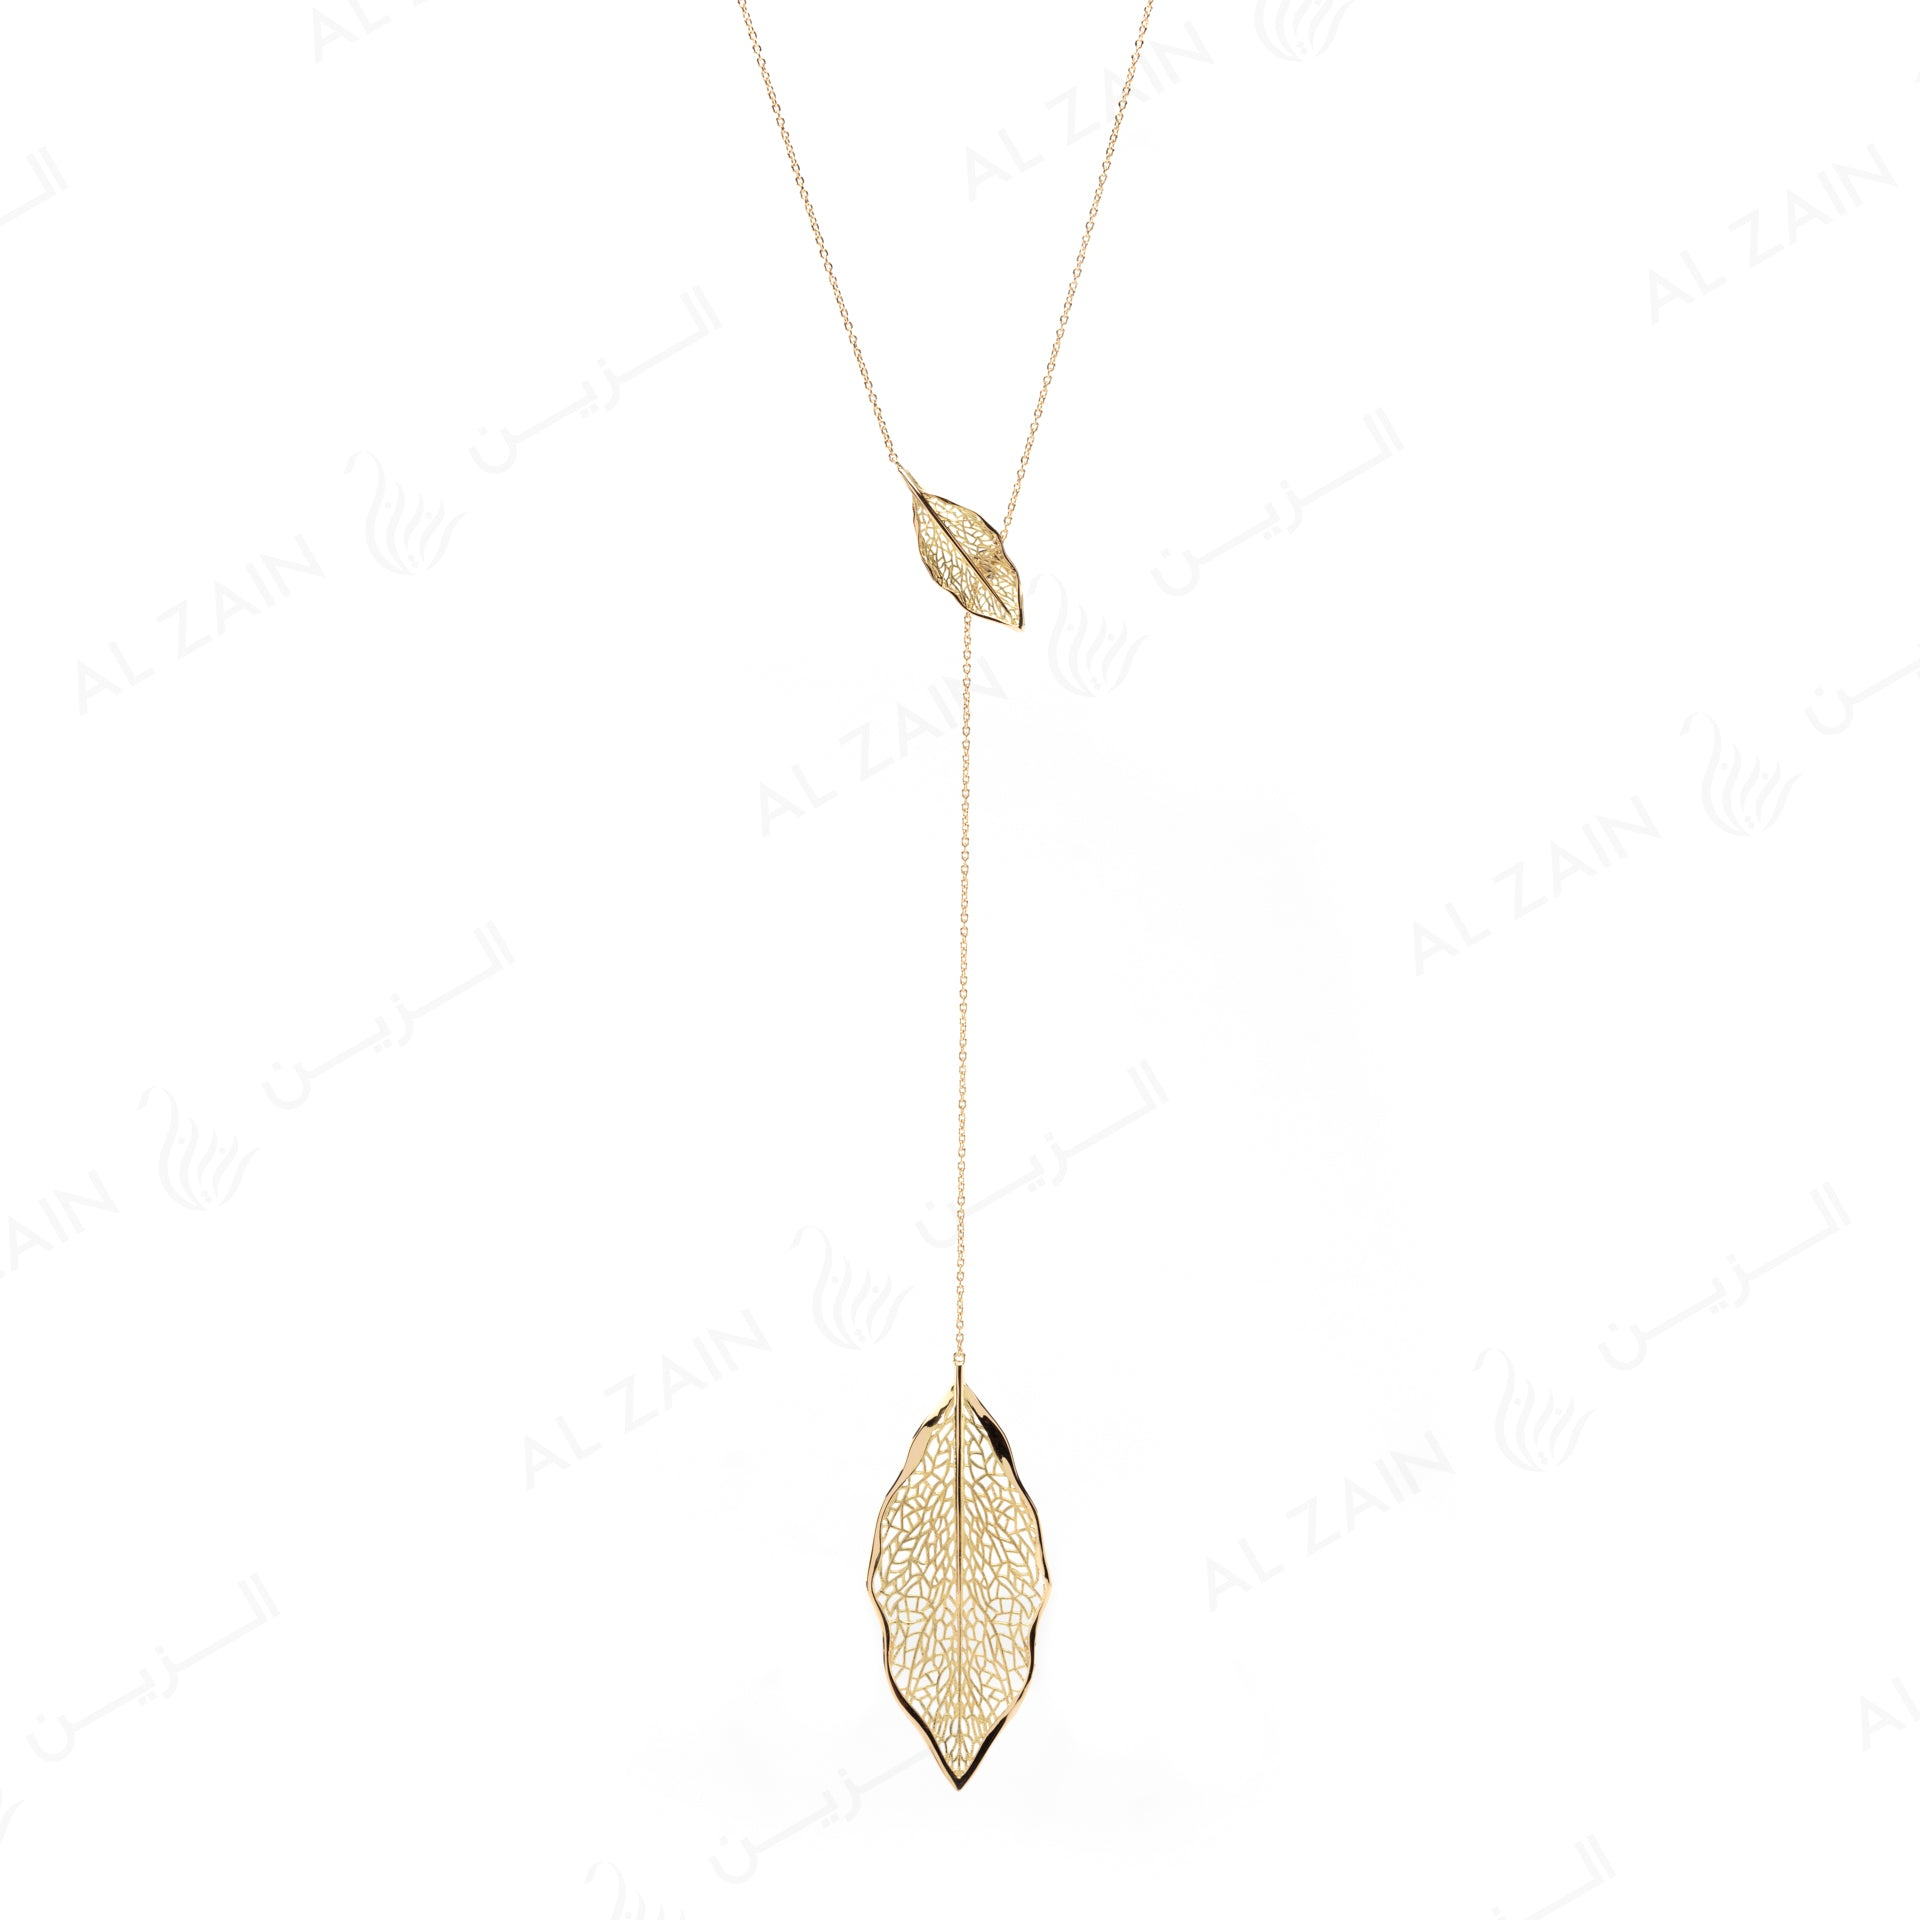 Autumn Necklace in Yellow Gold - Al Zain Jewellery